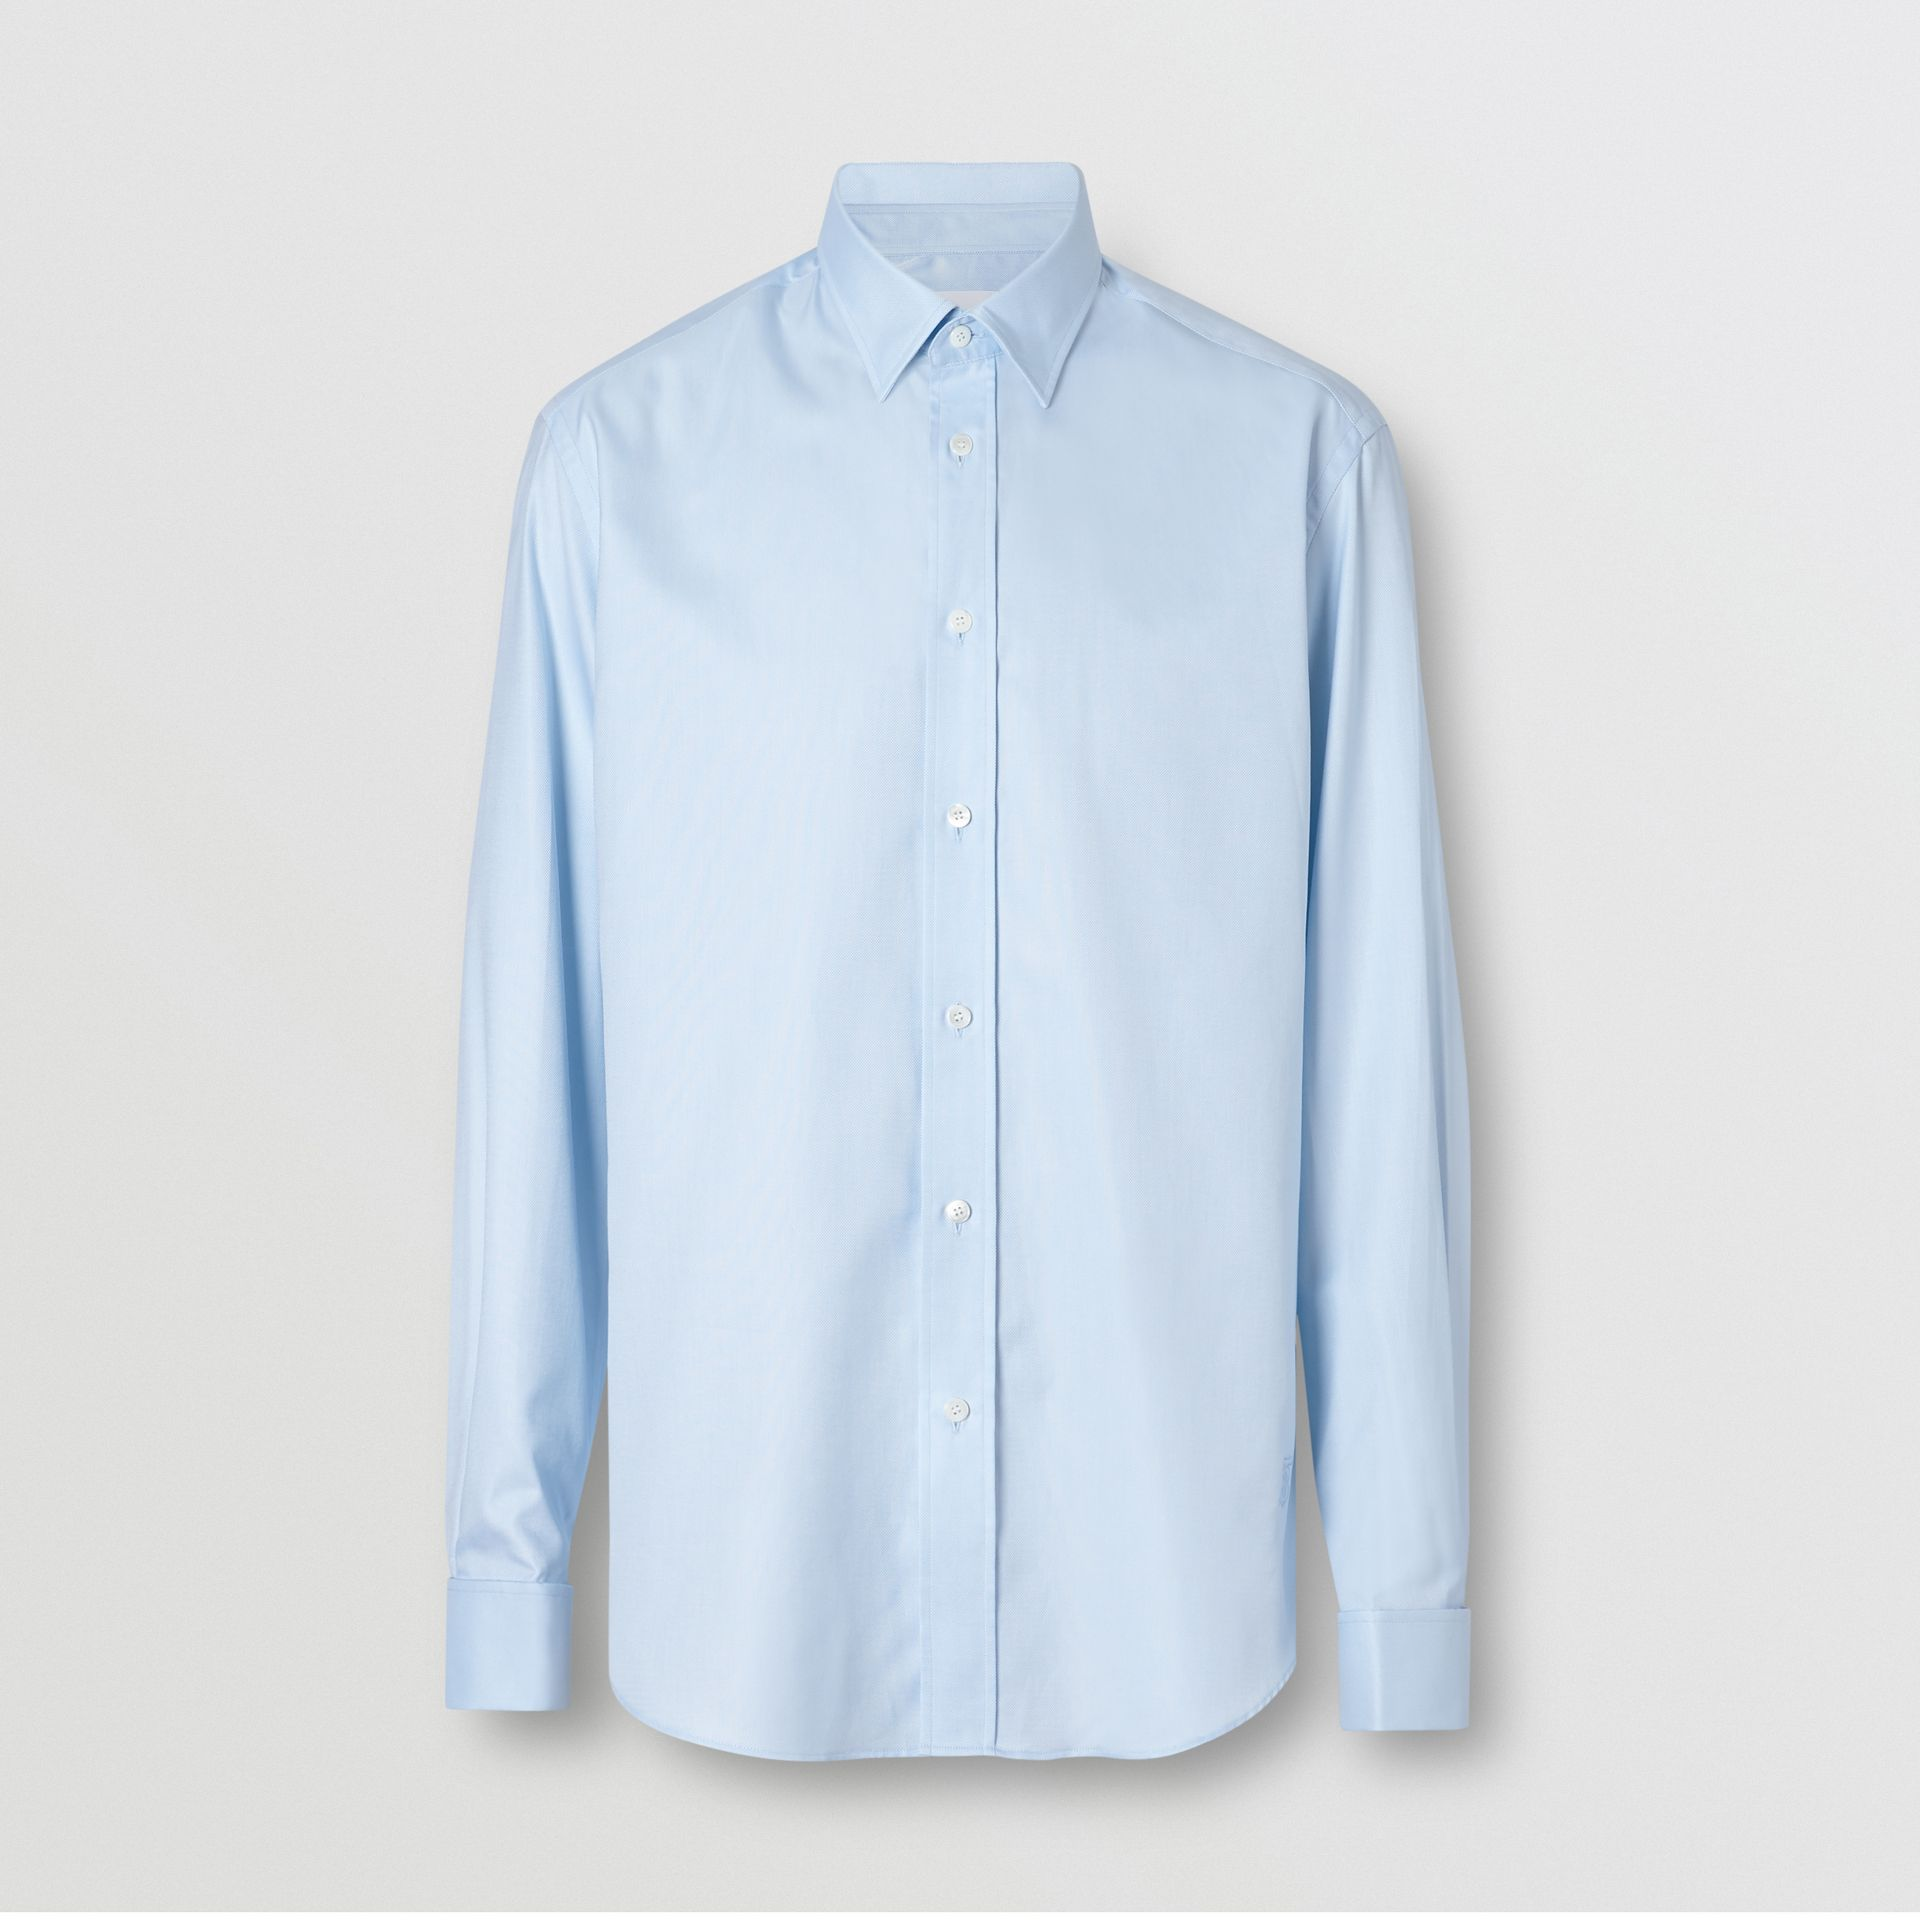 Classic Fit Monogram Motif Cotton Oxford Shirt in Pale Blue - Men | Burberry Canada - gallery image 3